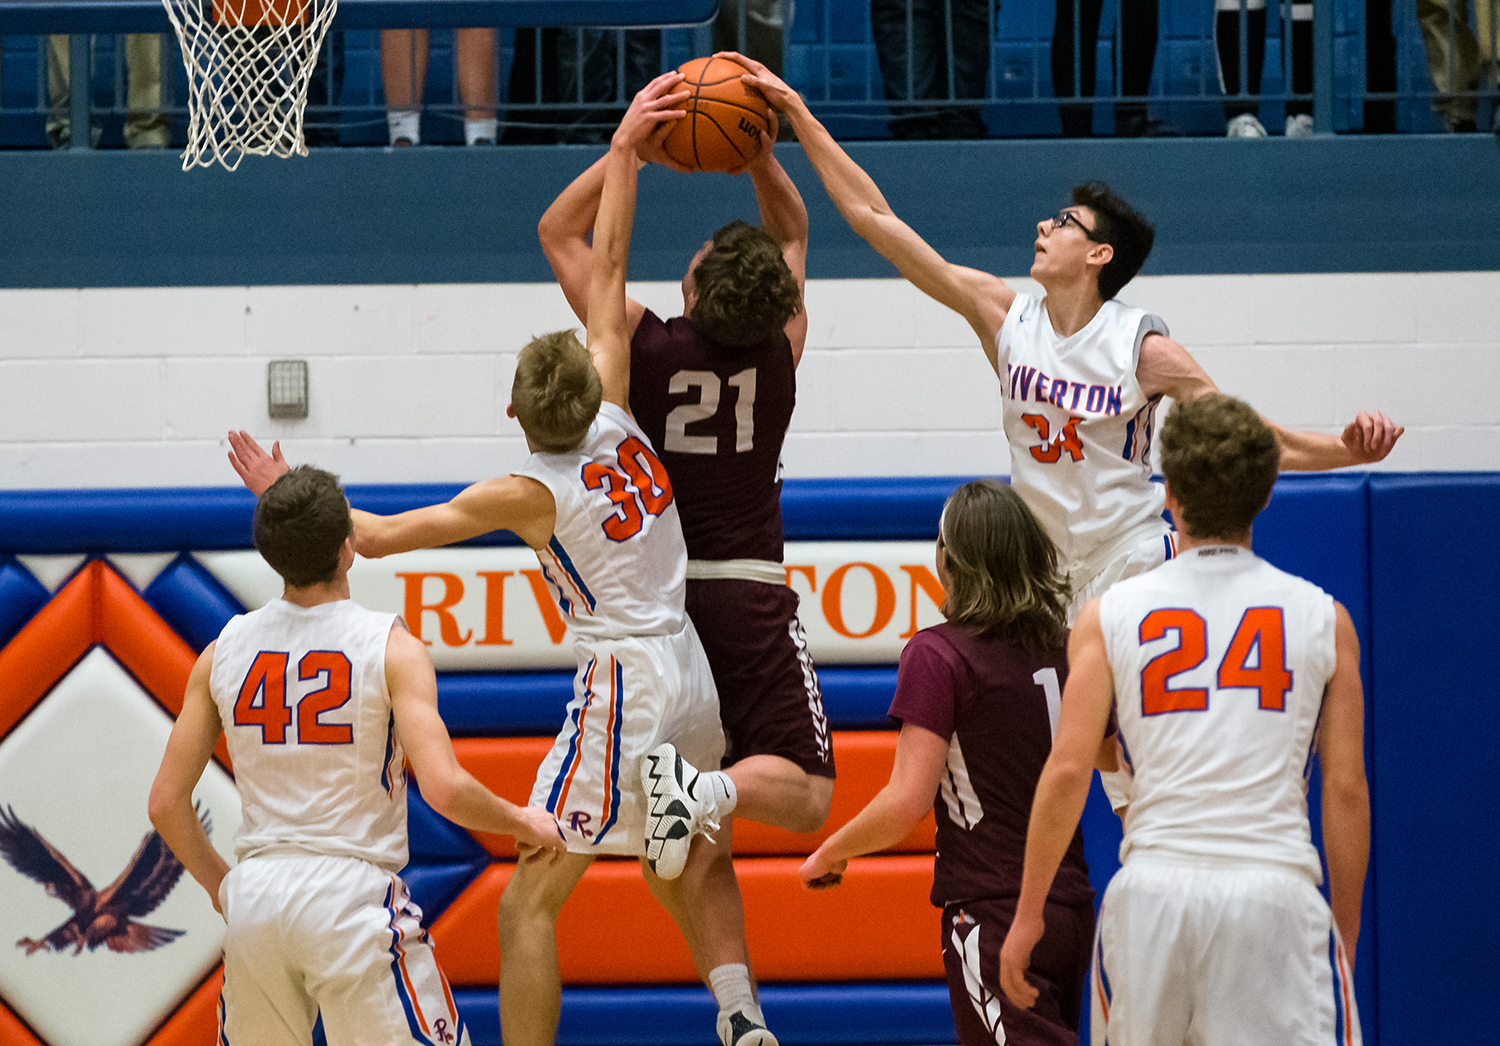 Riverton's Travis Hogan (34) and Riverton's Kaleb Rutter (30) combine to block a shot from Tremont's Ryan Wagenbach (21) in the first half during the Class 2A Riverton Sectional Semifinals at the Hawk Center, Tuesday, Feb. 26, 2019, in Riverton, Ill. [Justin L. Fowler/The State Journal-Register]